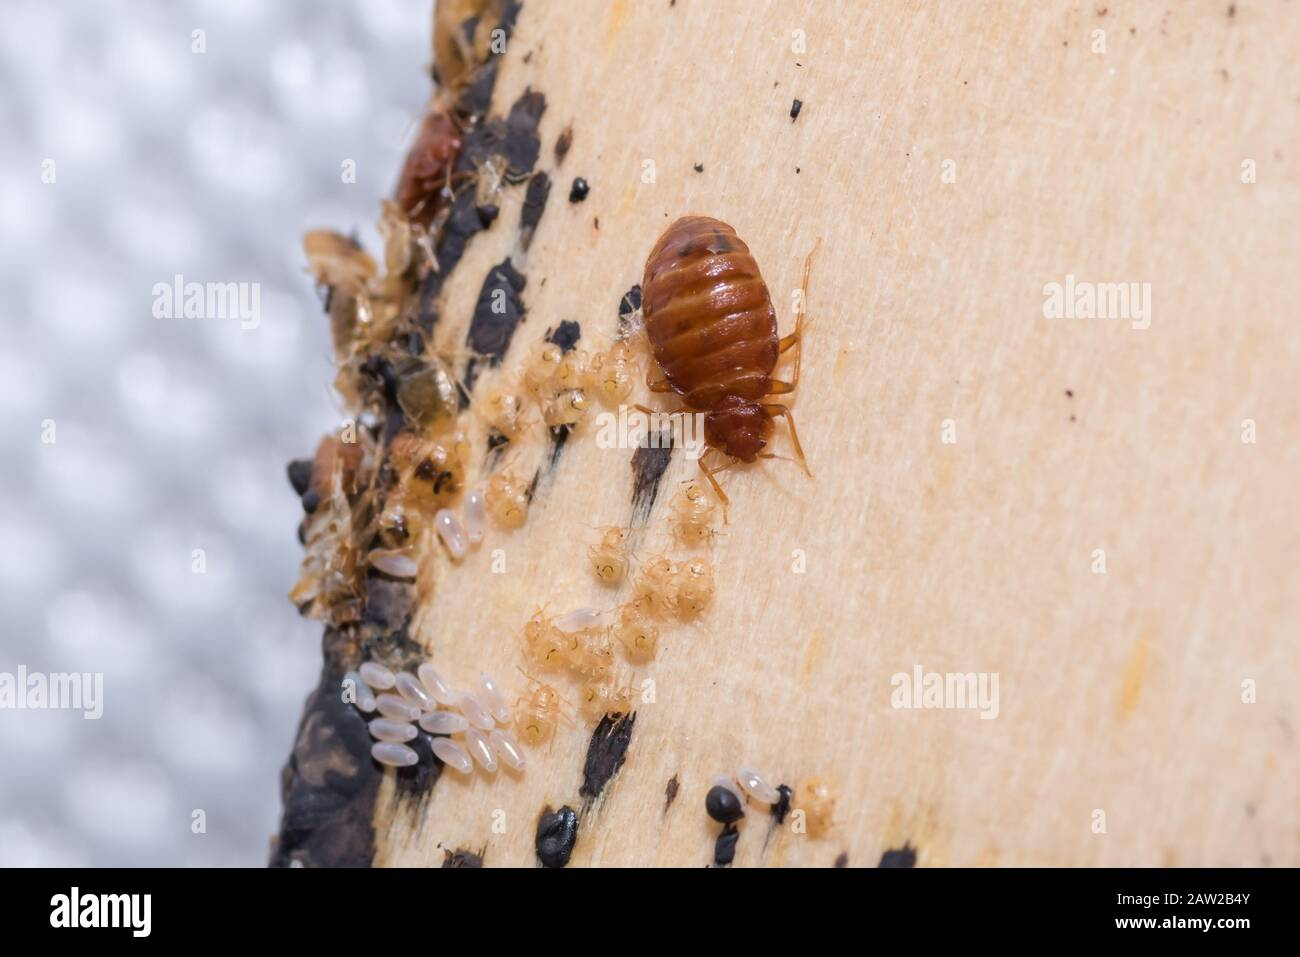 Bed Bugs Bed Bug Eggs And Larva Found On A Timber Bed Slate Stock Photo Alamy